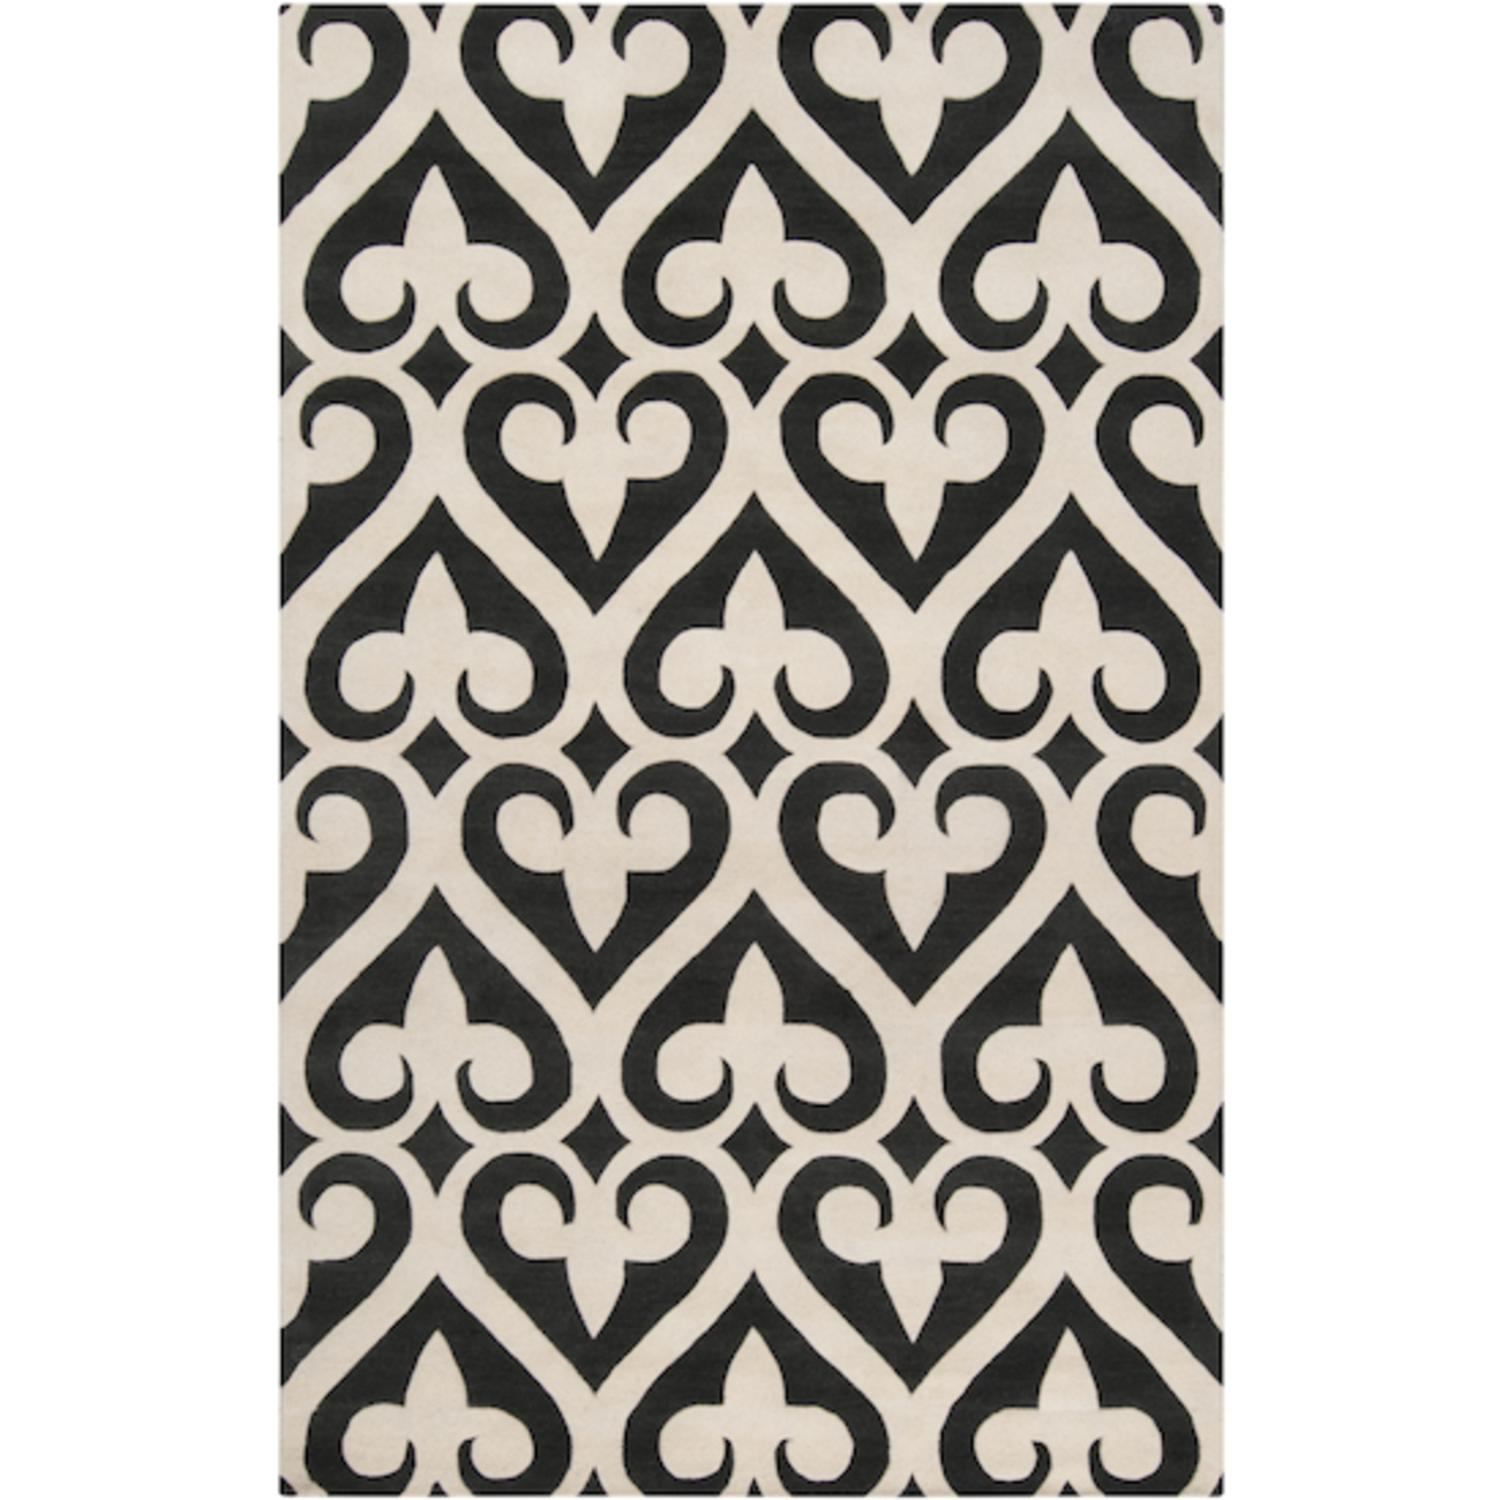 8' x 11' Spades White and Black Olive Wool Area Throw Rug